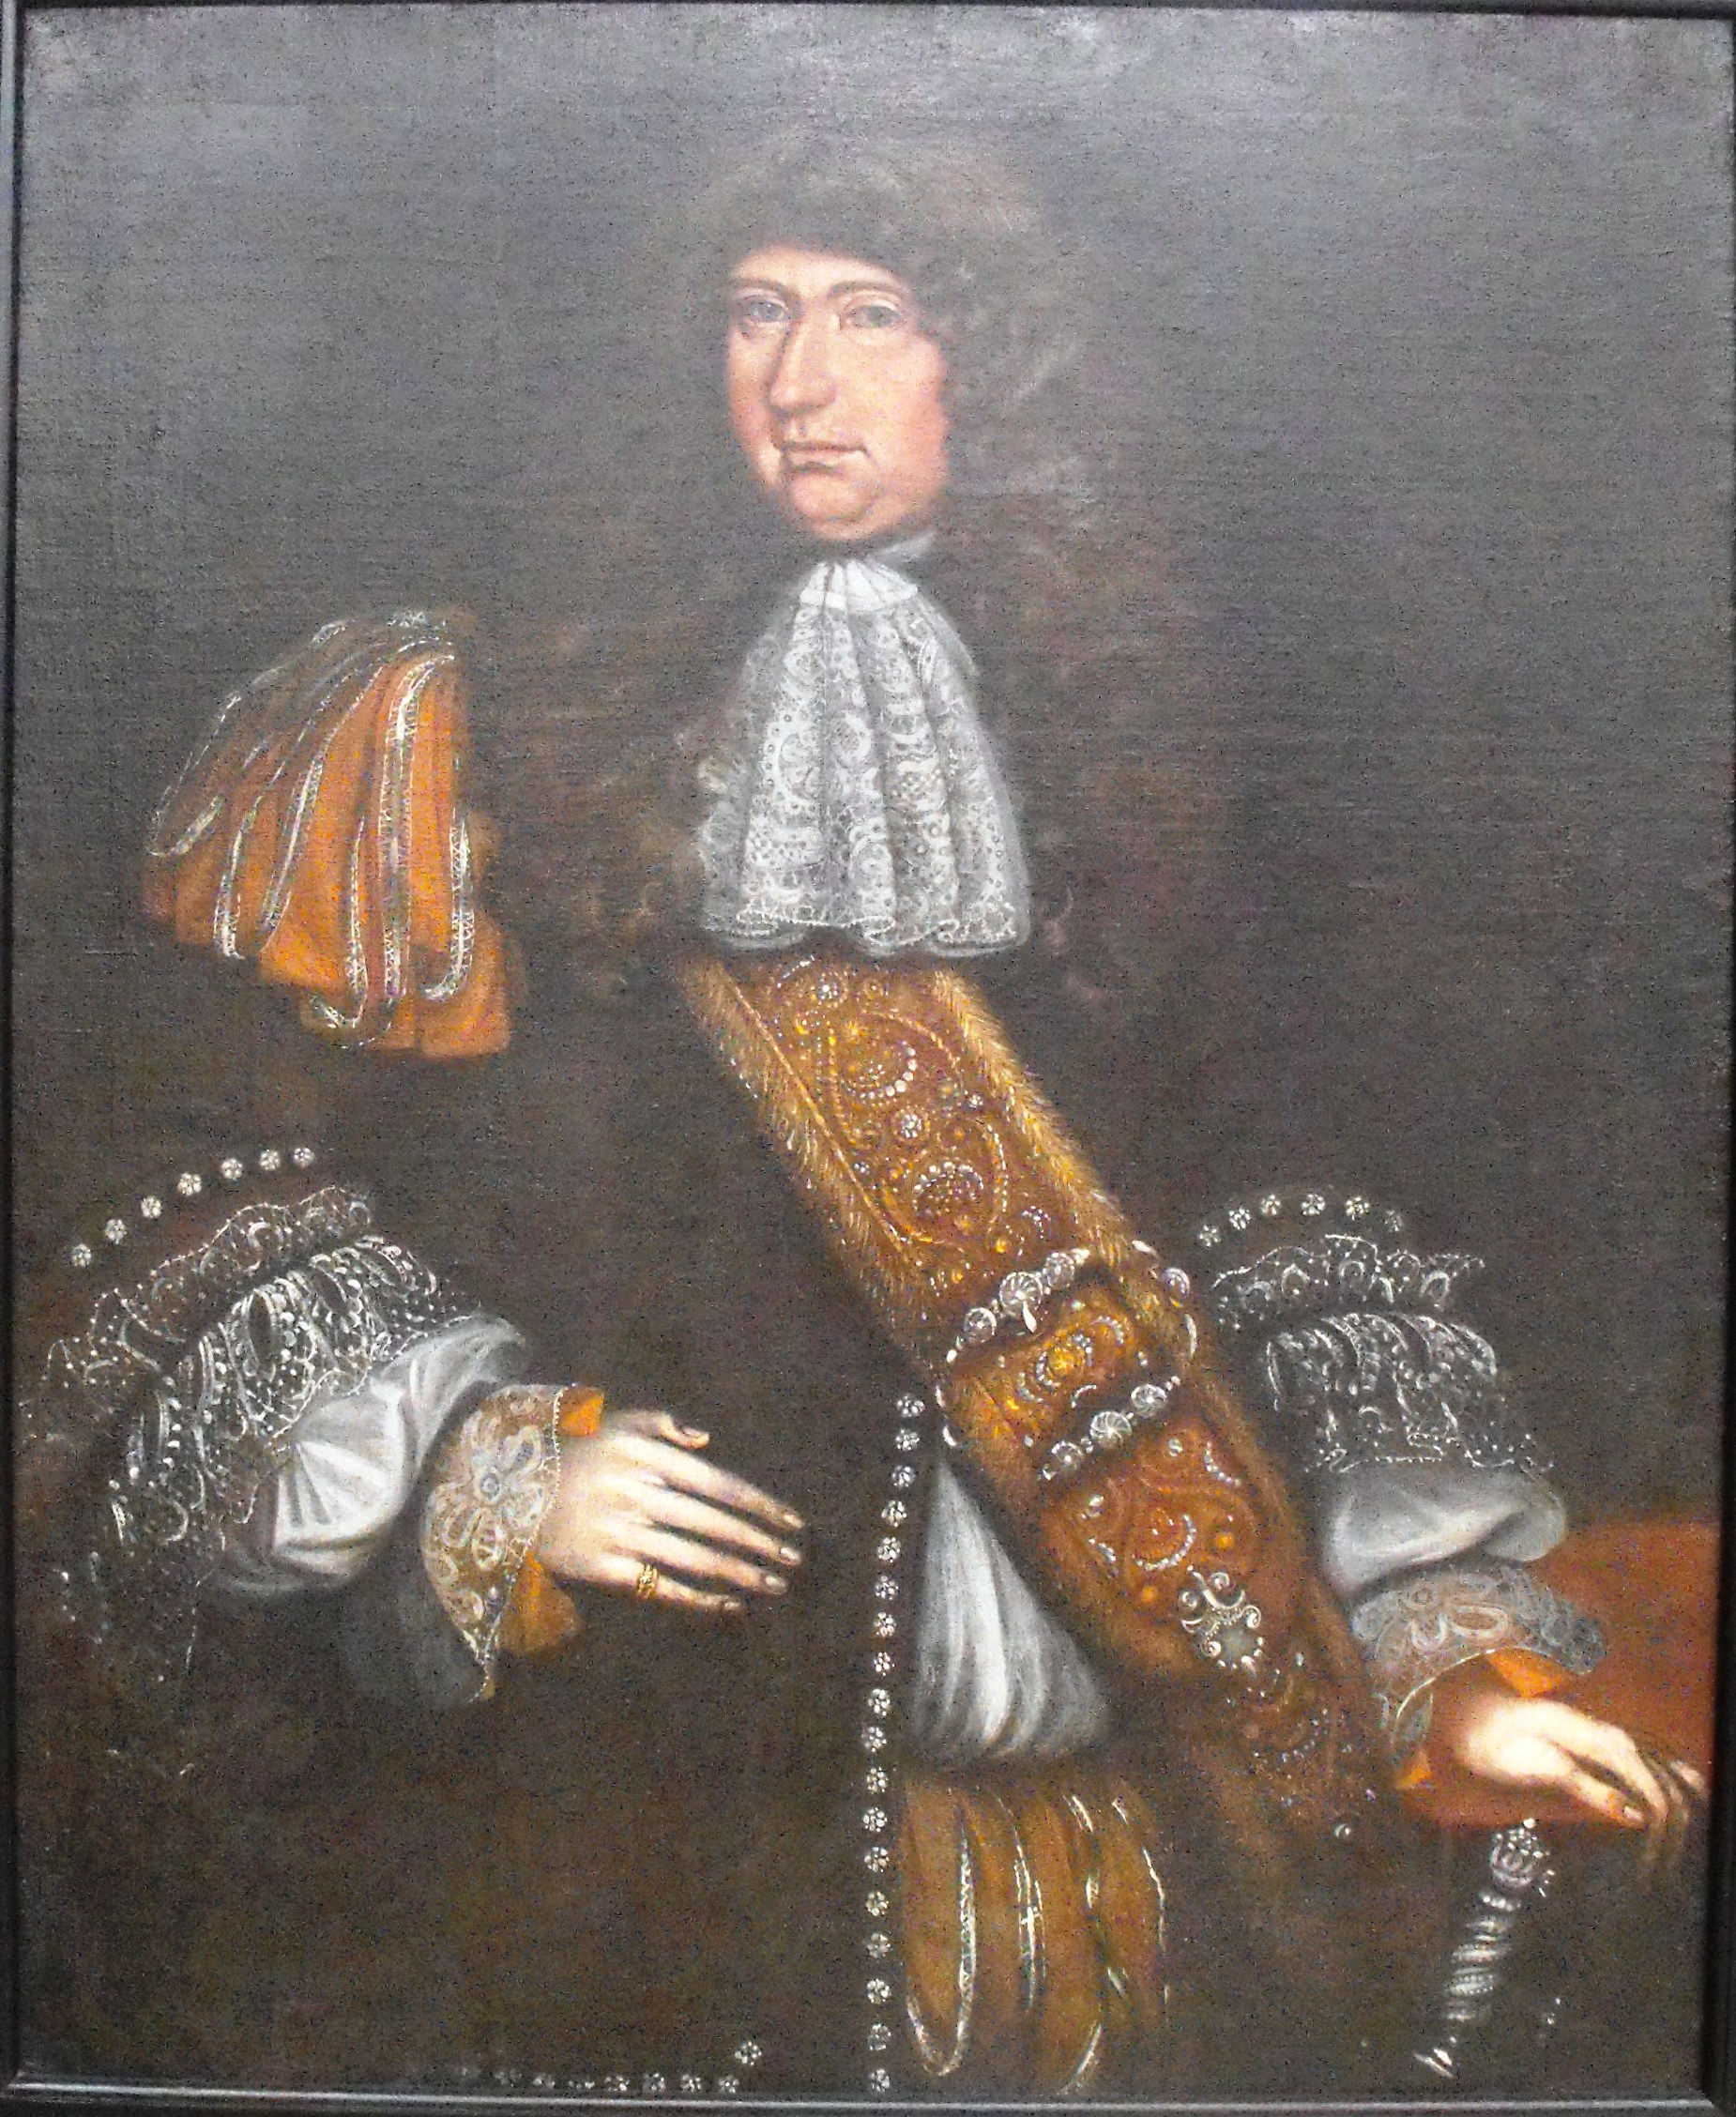 Attributed to Thomas Smith (American, active 1680-1693) Portrait of a Man, probably Eliza Hutchinson, ca. 1675-1690 Oil on canvas; 43 ½ x 35 ½ in. Lent by the Fogg Art Museum, Harvard University, L115.1993